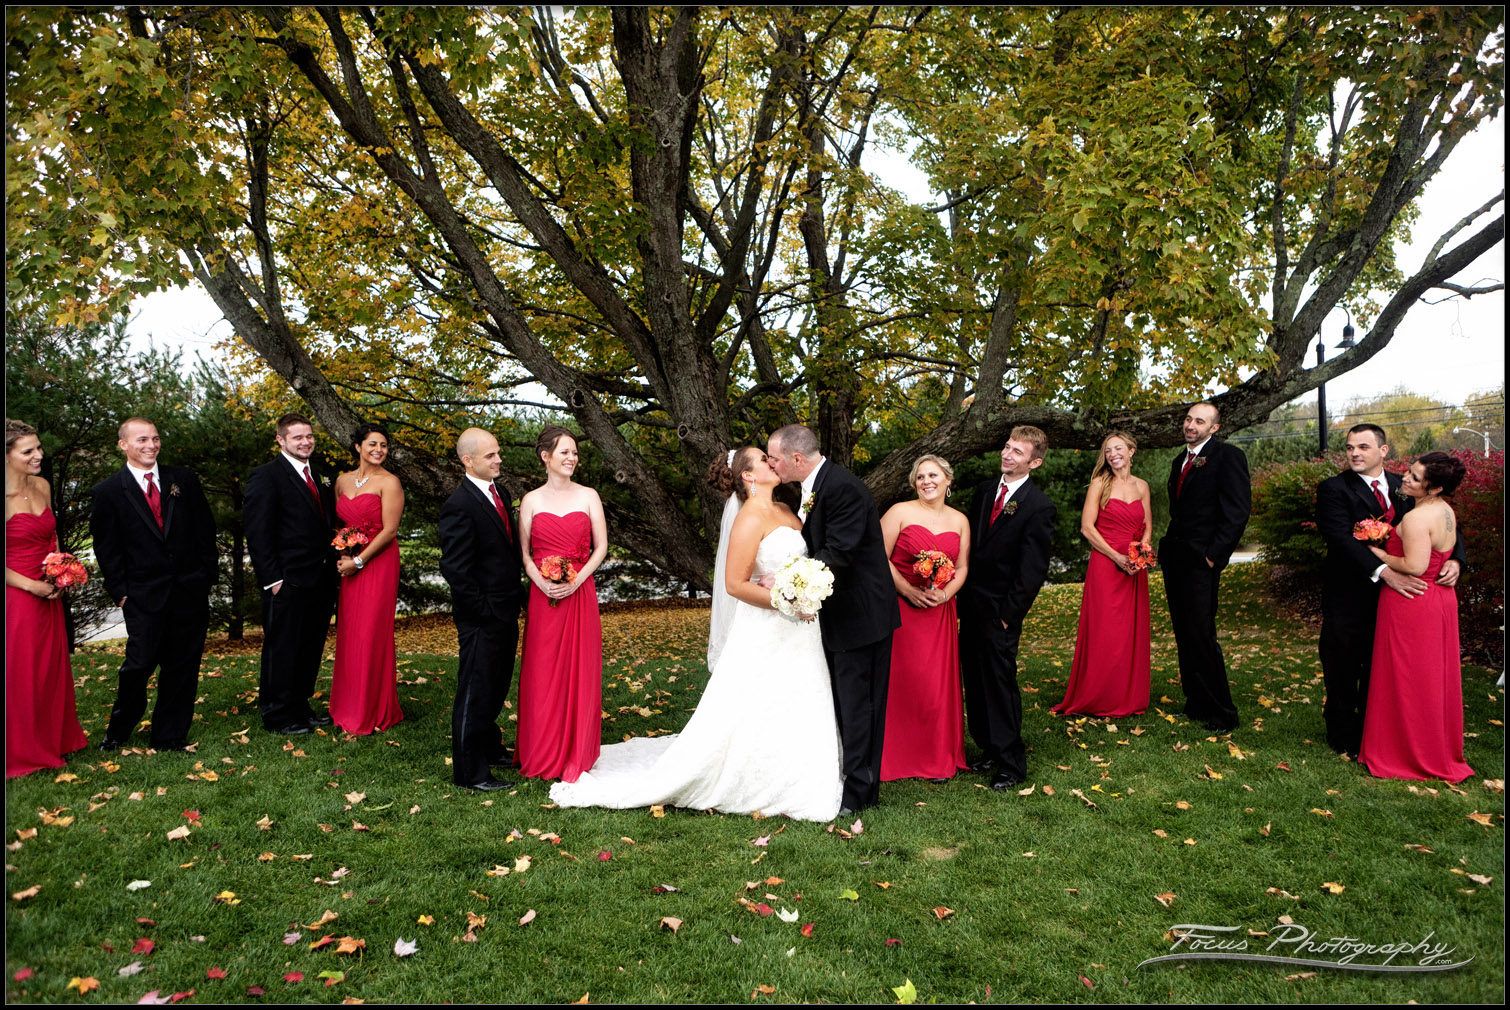 wedding party and bride and groom in berwick, maine wedding photography